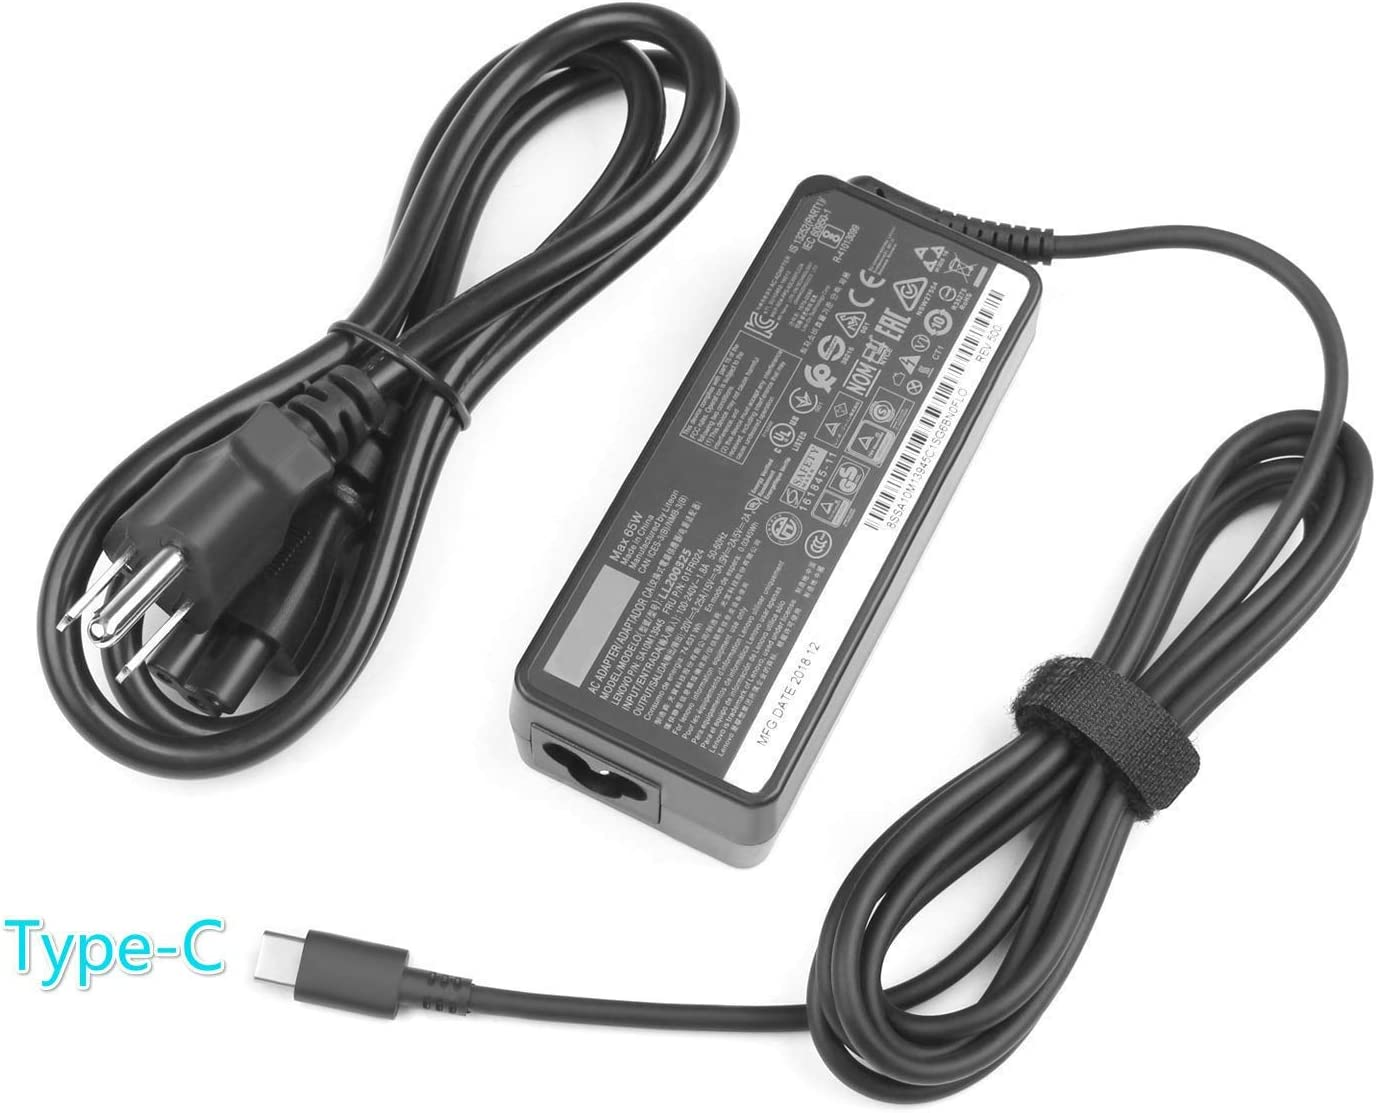 New AC Charger for Lenovo ThinkPad E580 E585 E590 E590S E595 20KS 20KV 20NB Laptop Power Supply Adapter Cord 65W USB C